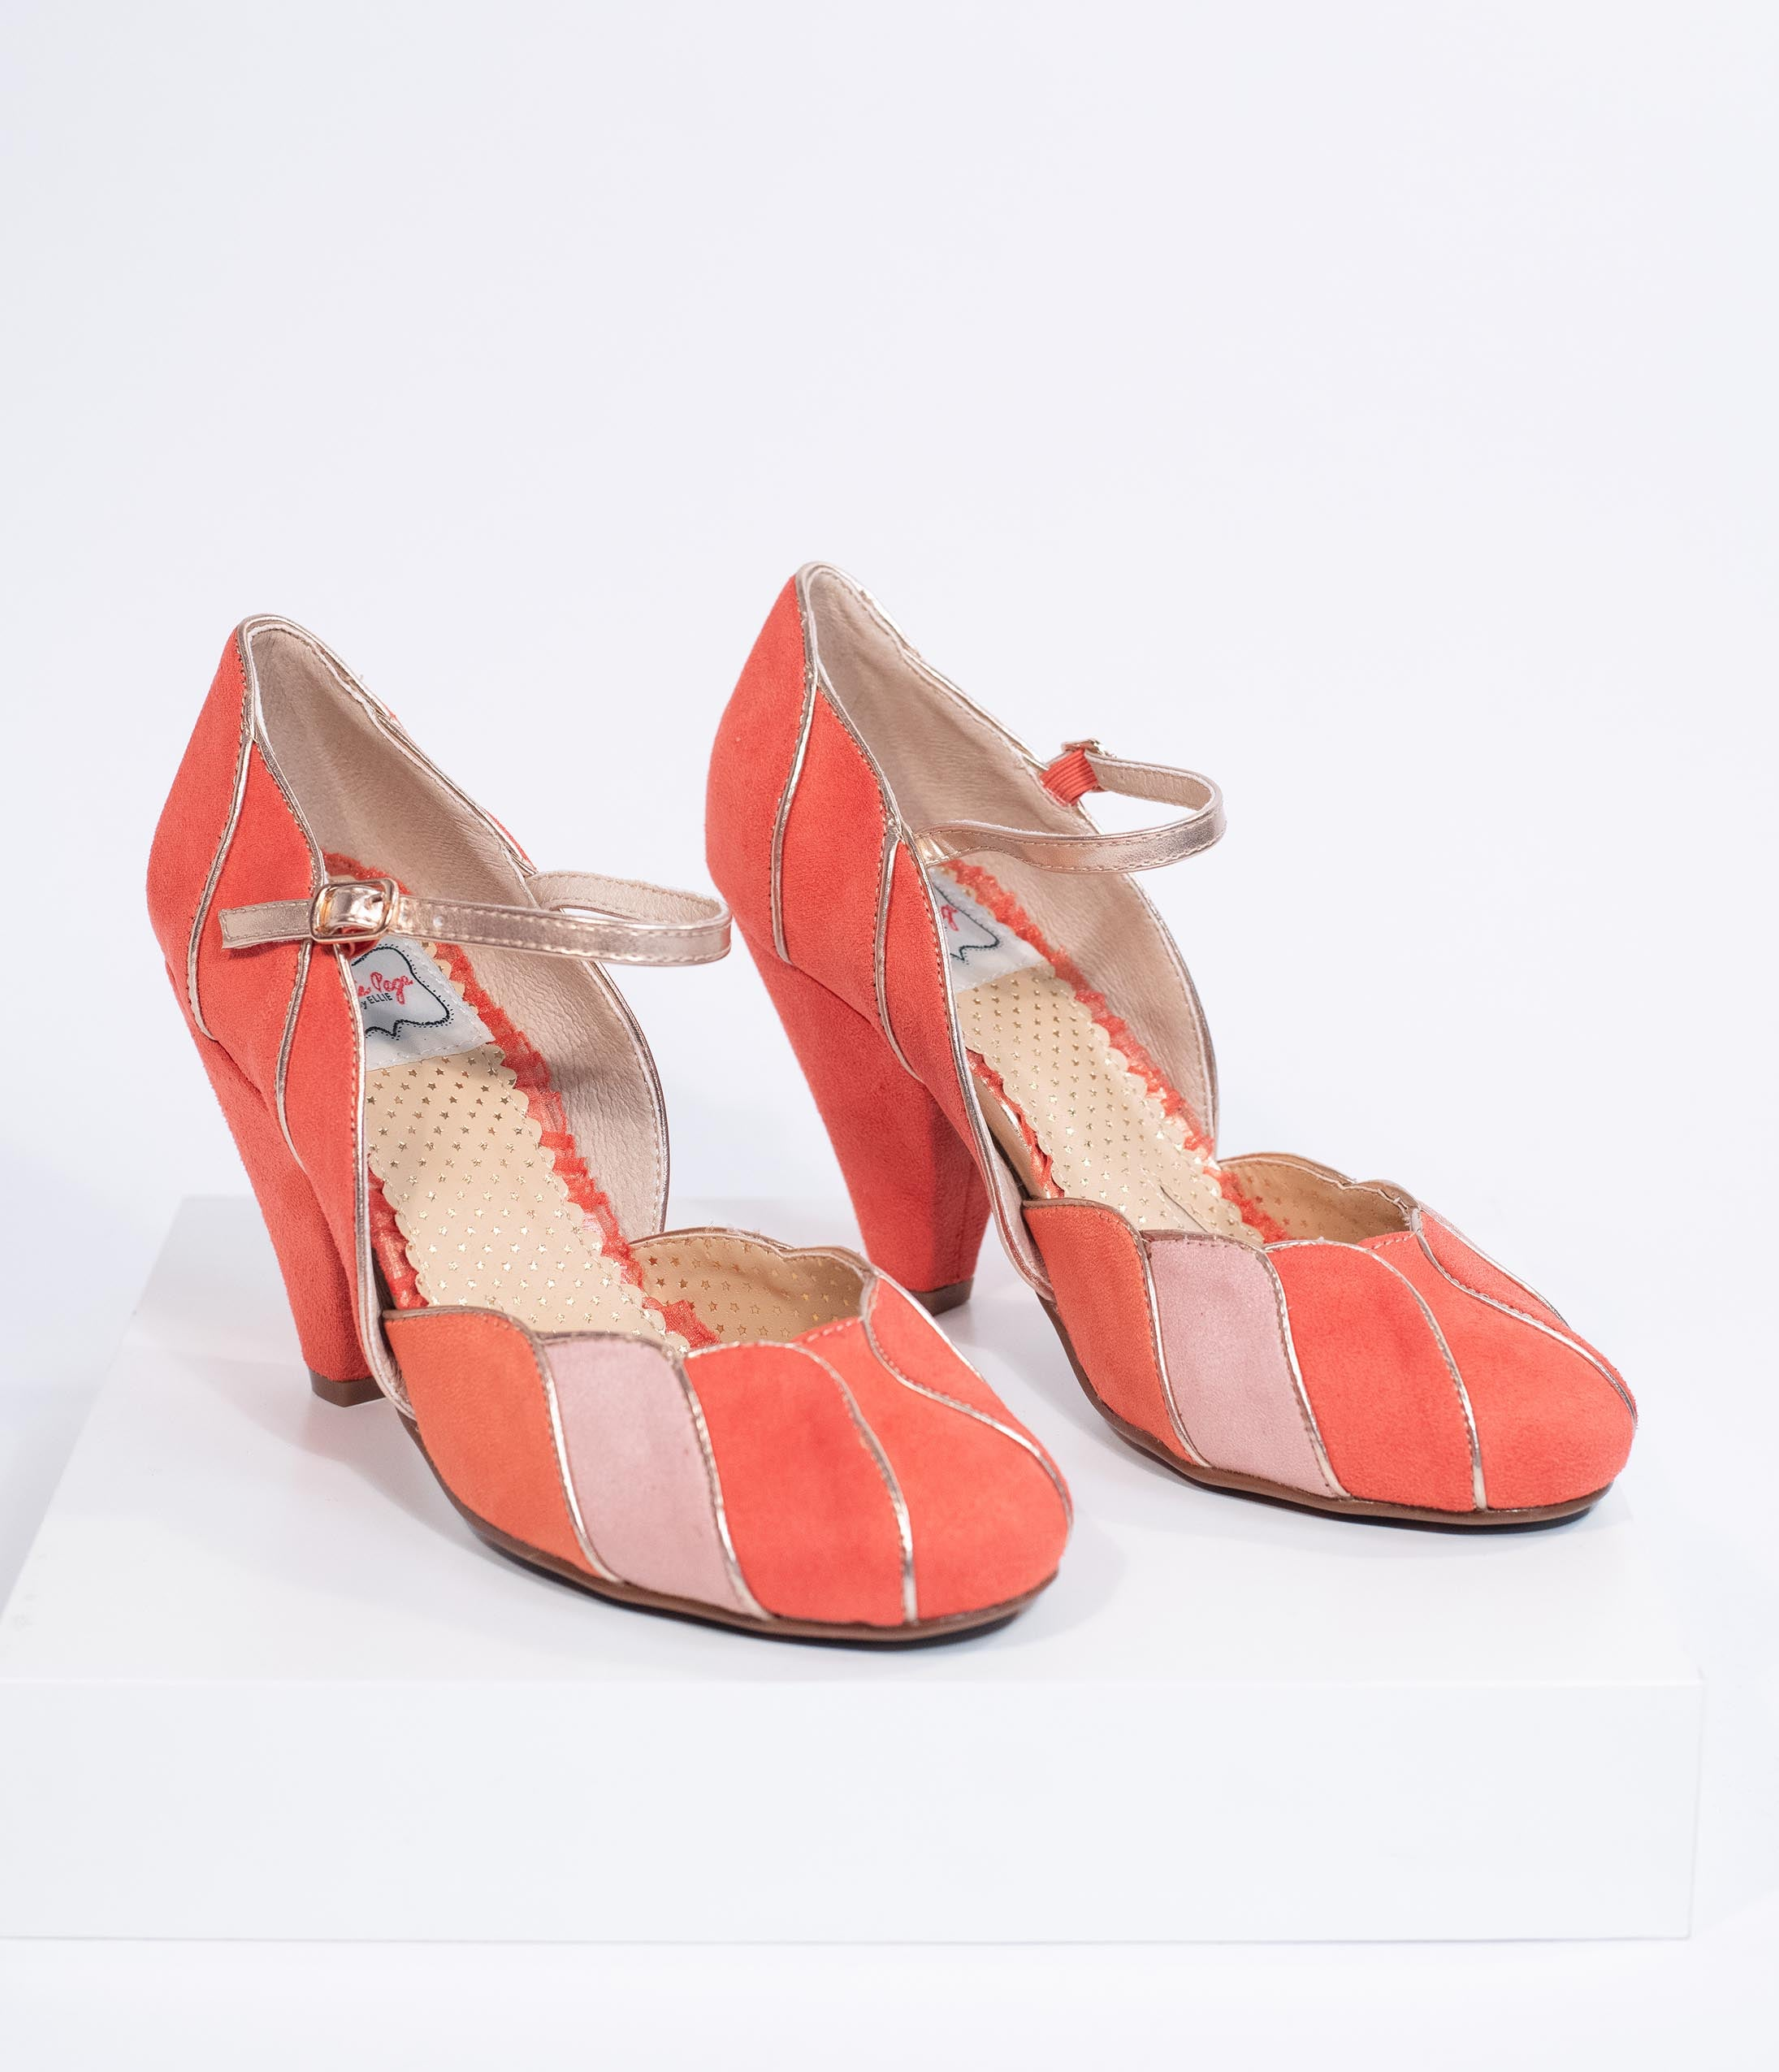 1950s Style Shoes | Heels, Flats, Saddle Shoes Bettie Page 1950S Peach Pink Suede Kathryn Heels $78.00 AT vintagedancer.com